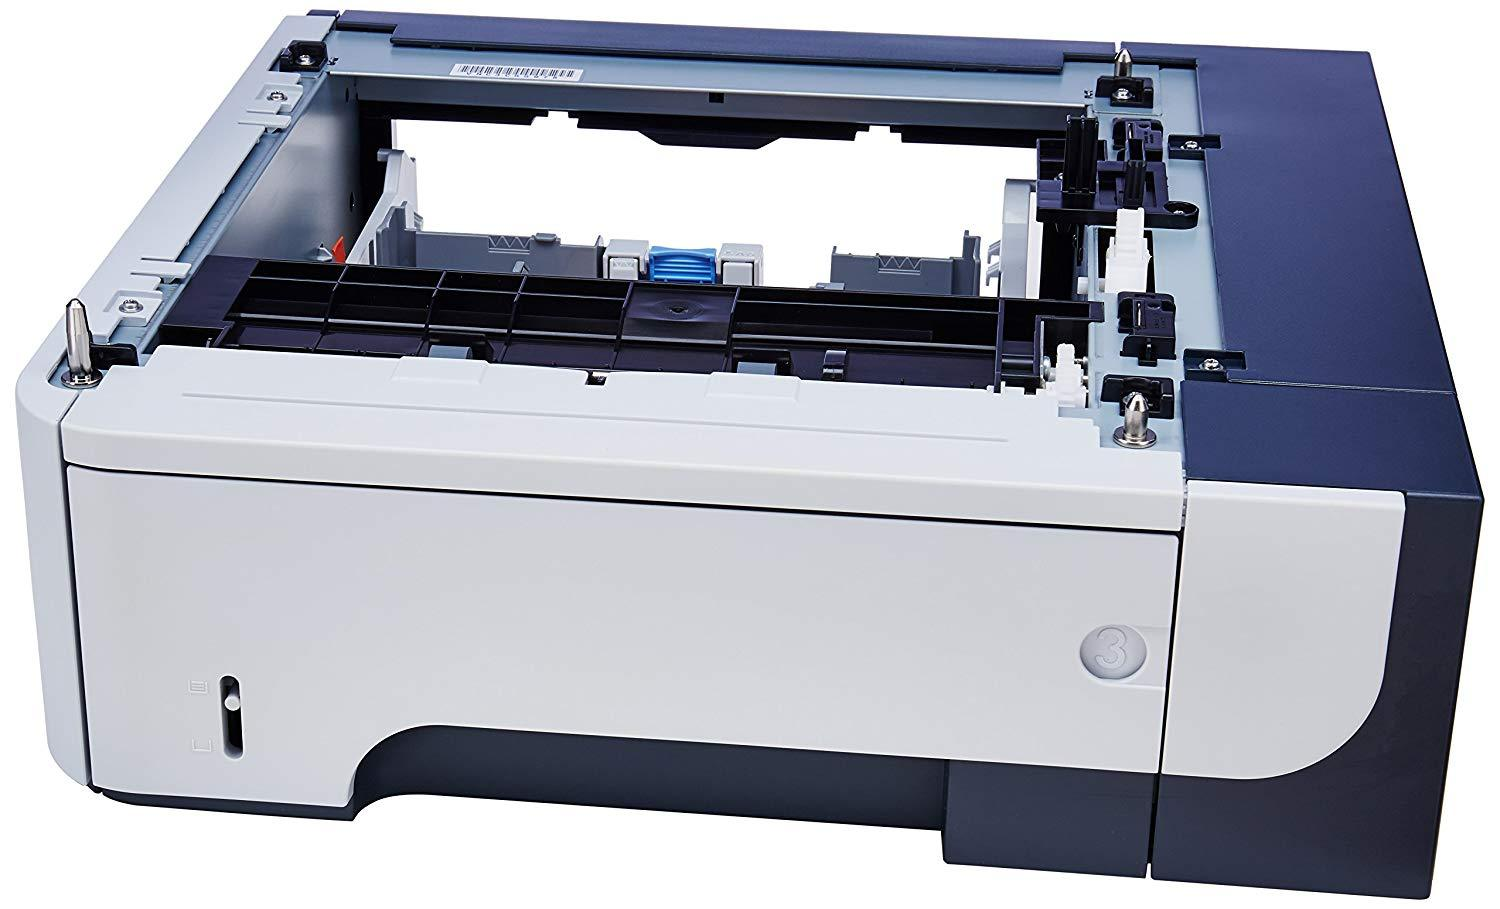 Hp ce530a printer tray 001